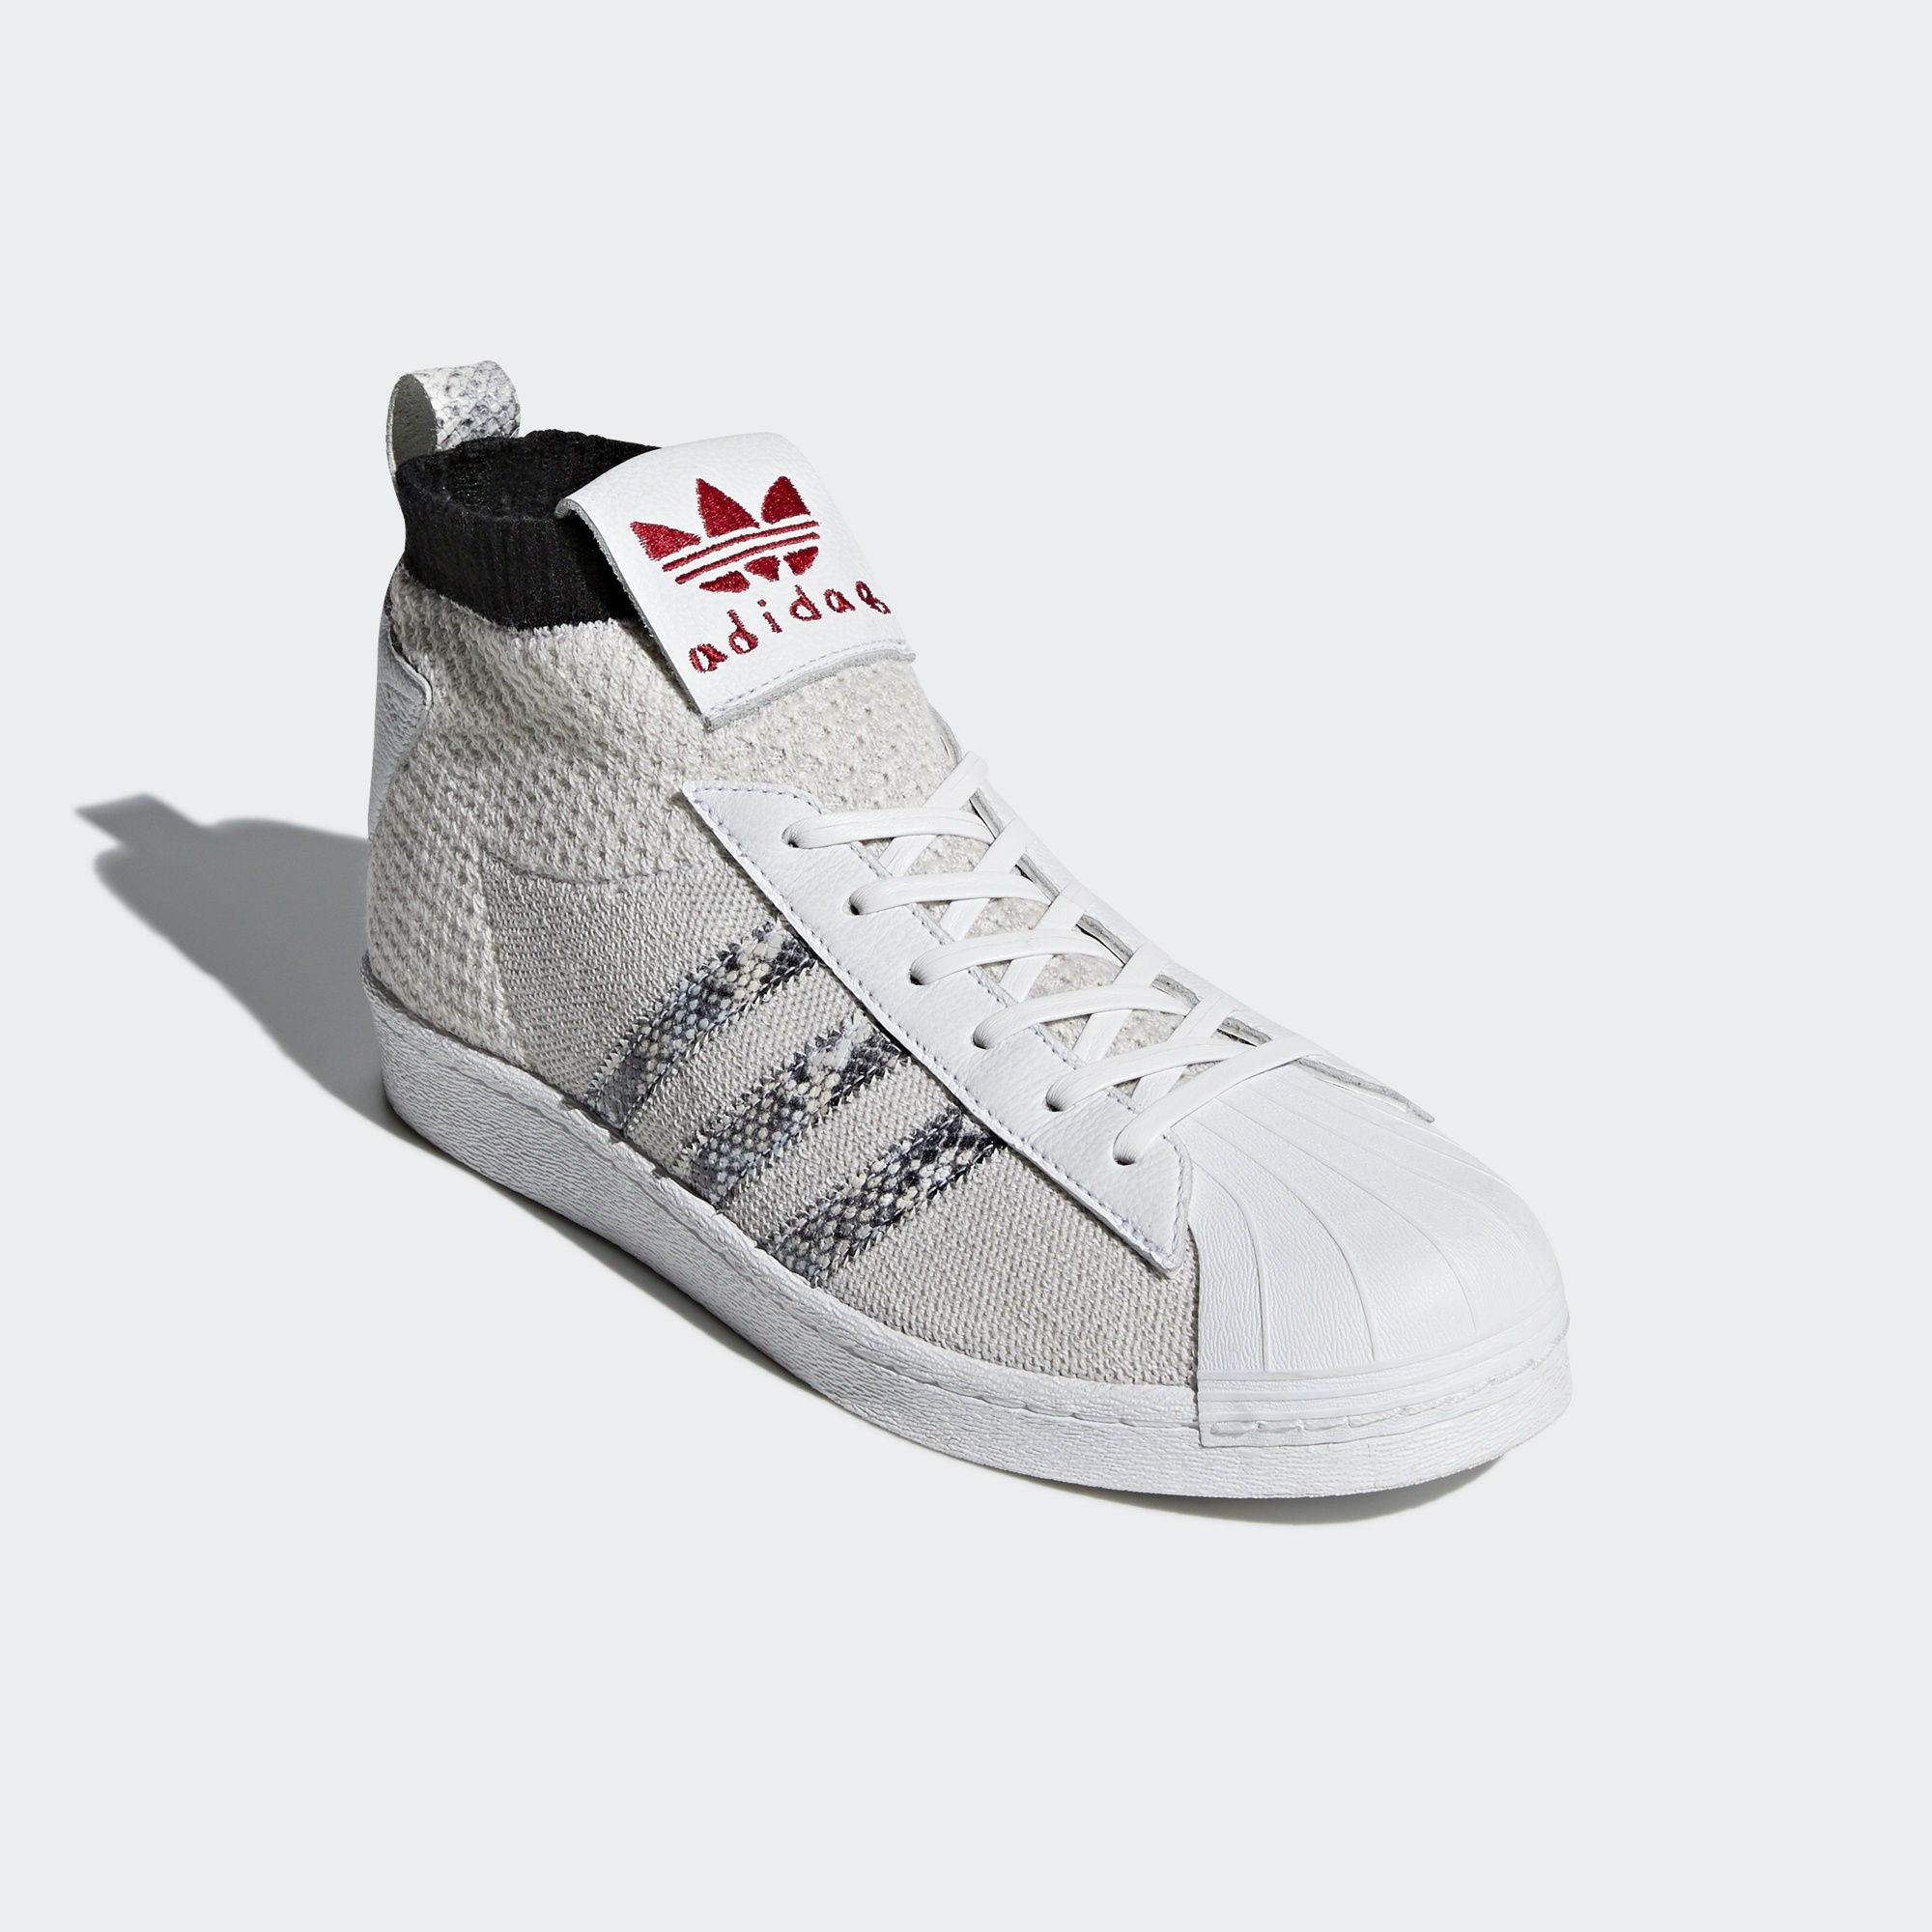 UA & SONS ULTRA STAR SHOES - WHITE